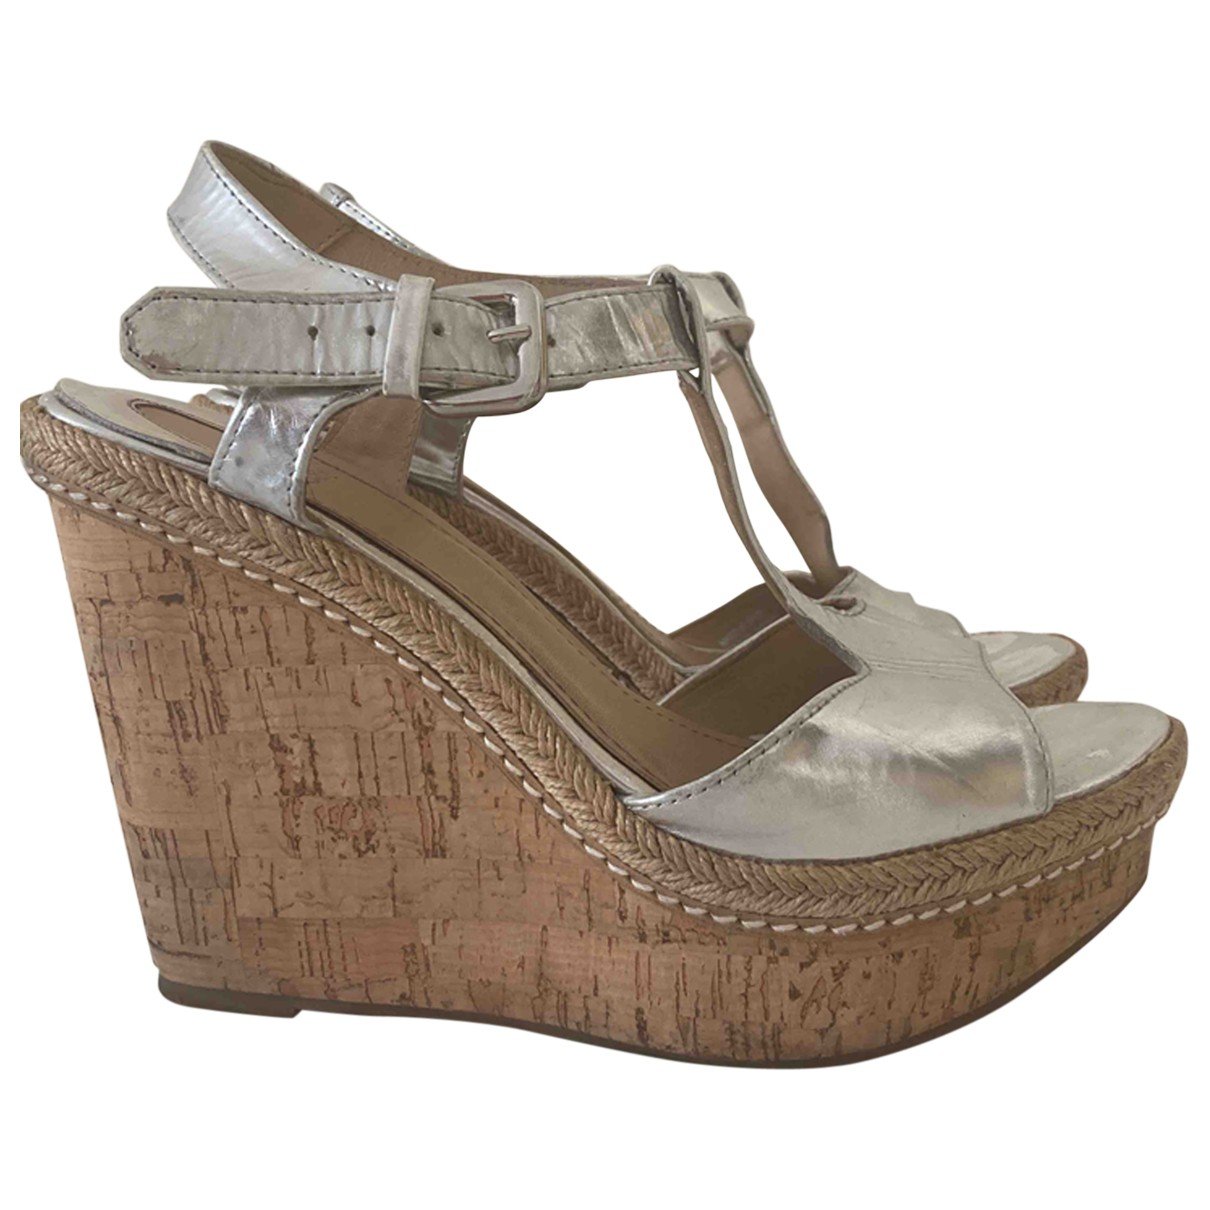 Uterque \N Silver Patent leather Sandals for Women 40 EU